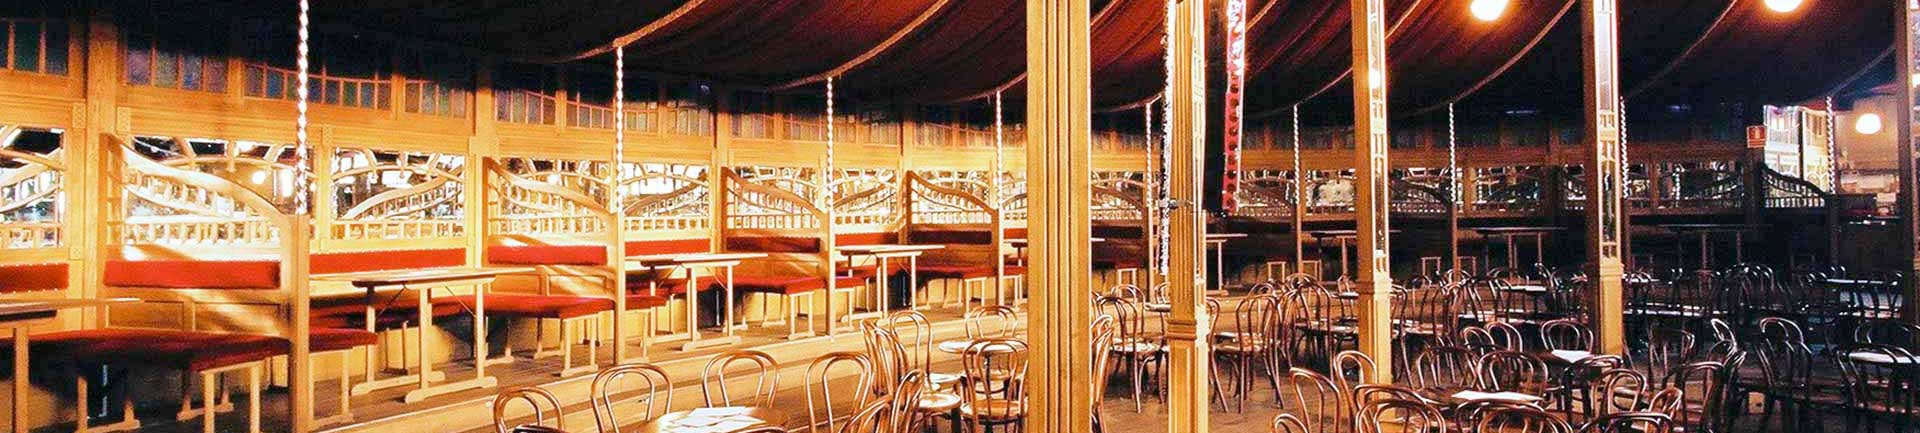 spiegeltent-magic-mirror